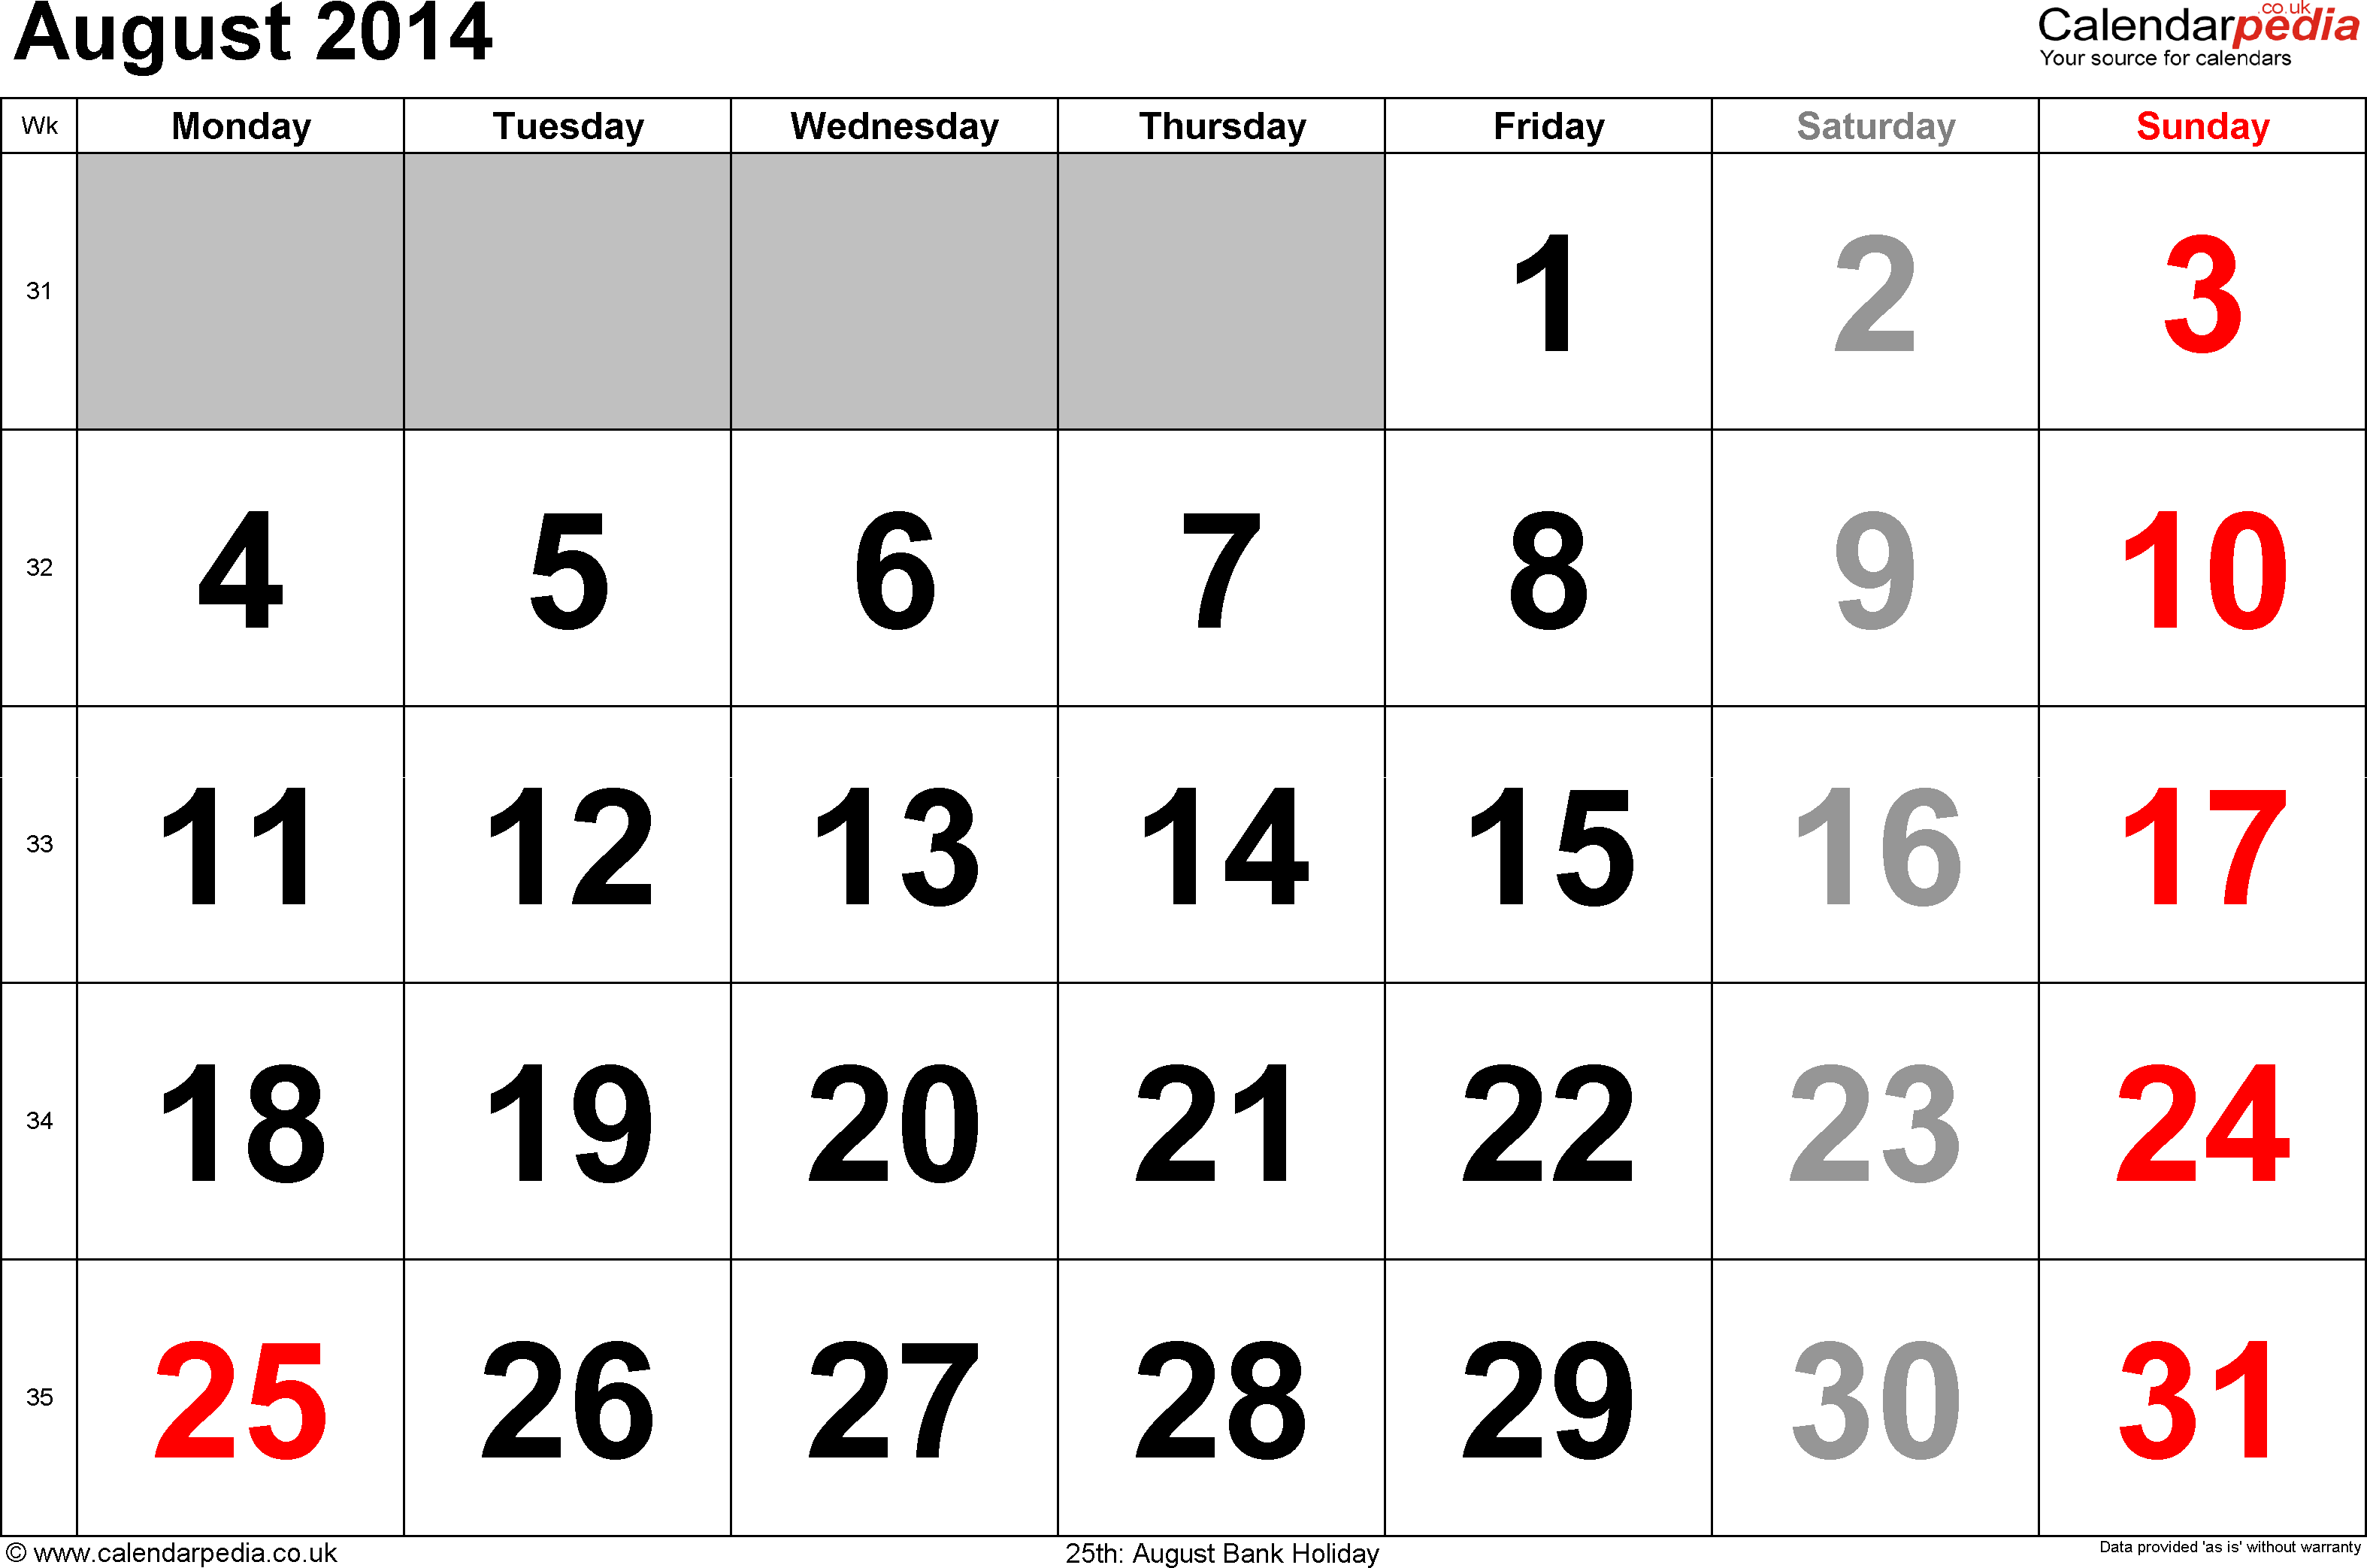 Calendar August 2014, landscape orientation, large numerals, 1 page, with UK bank holidays and week numbers